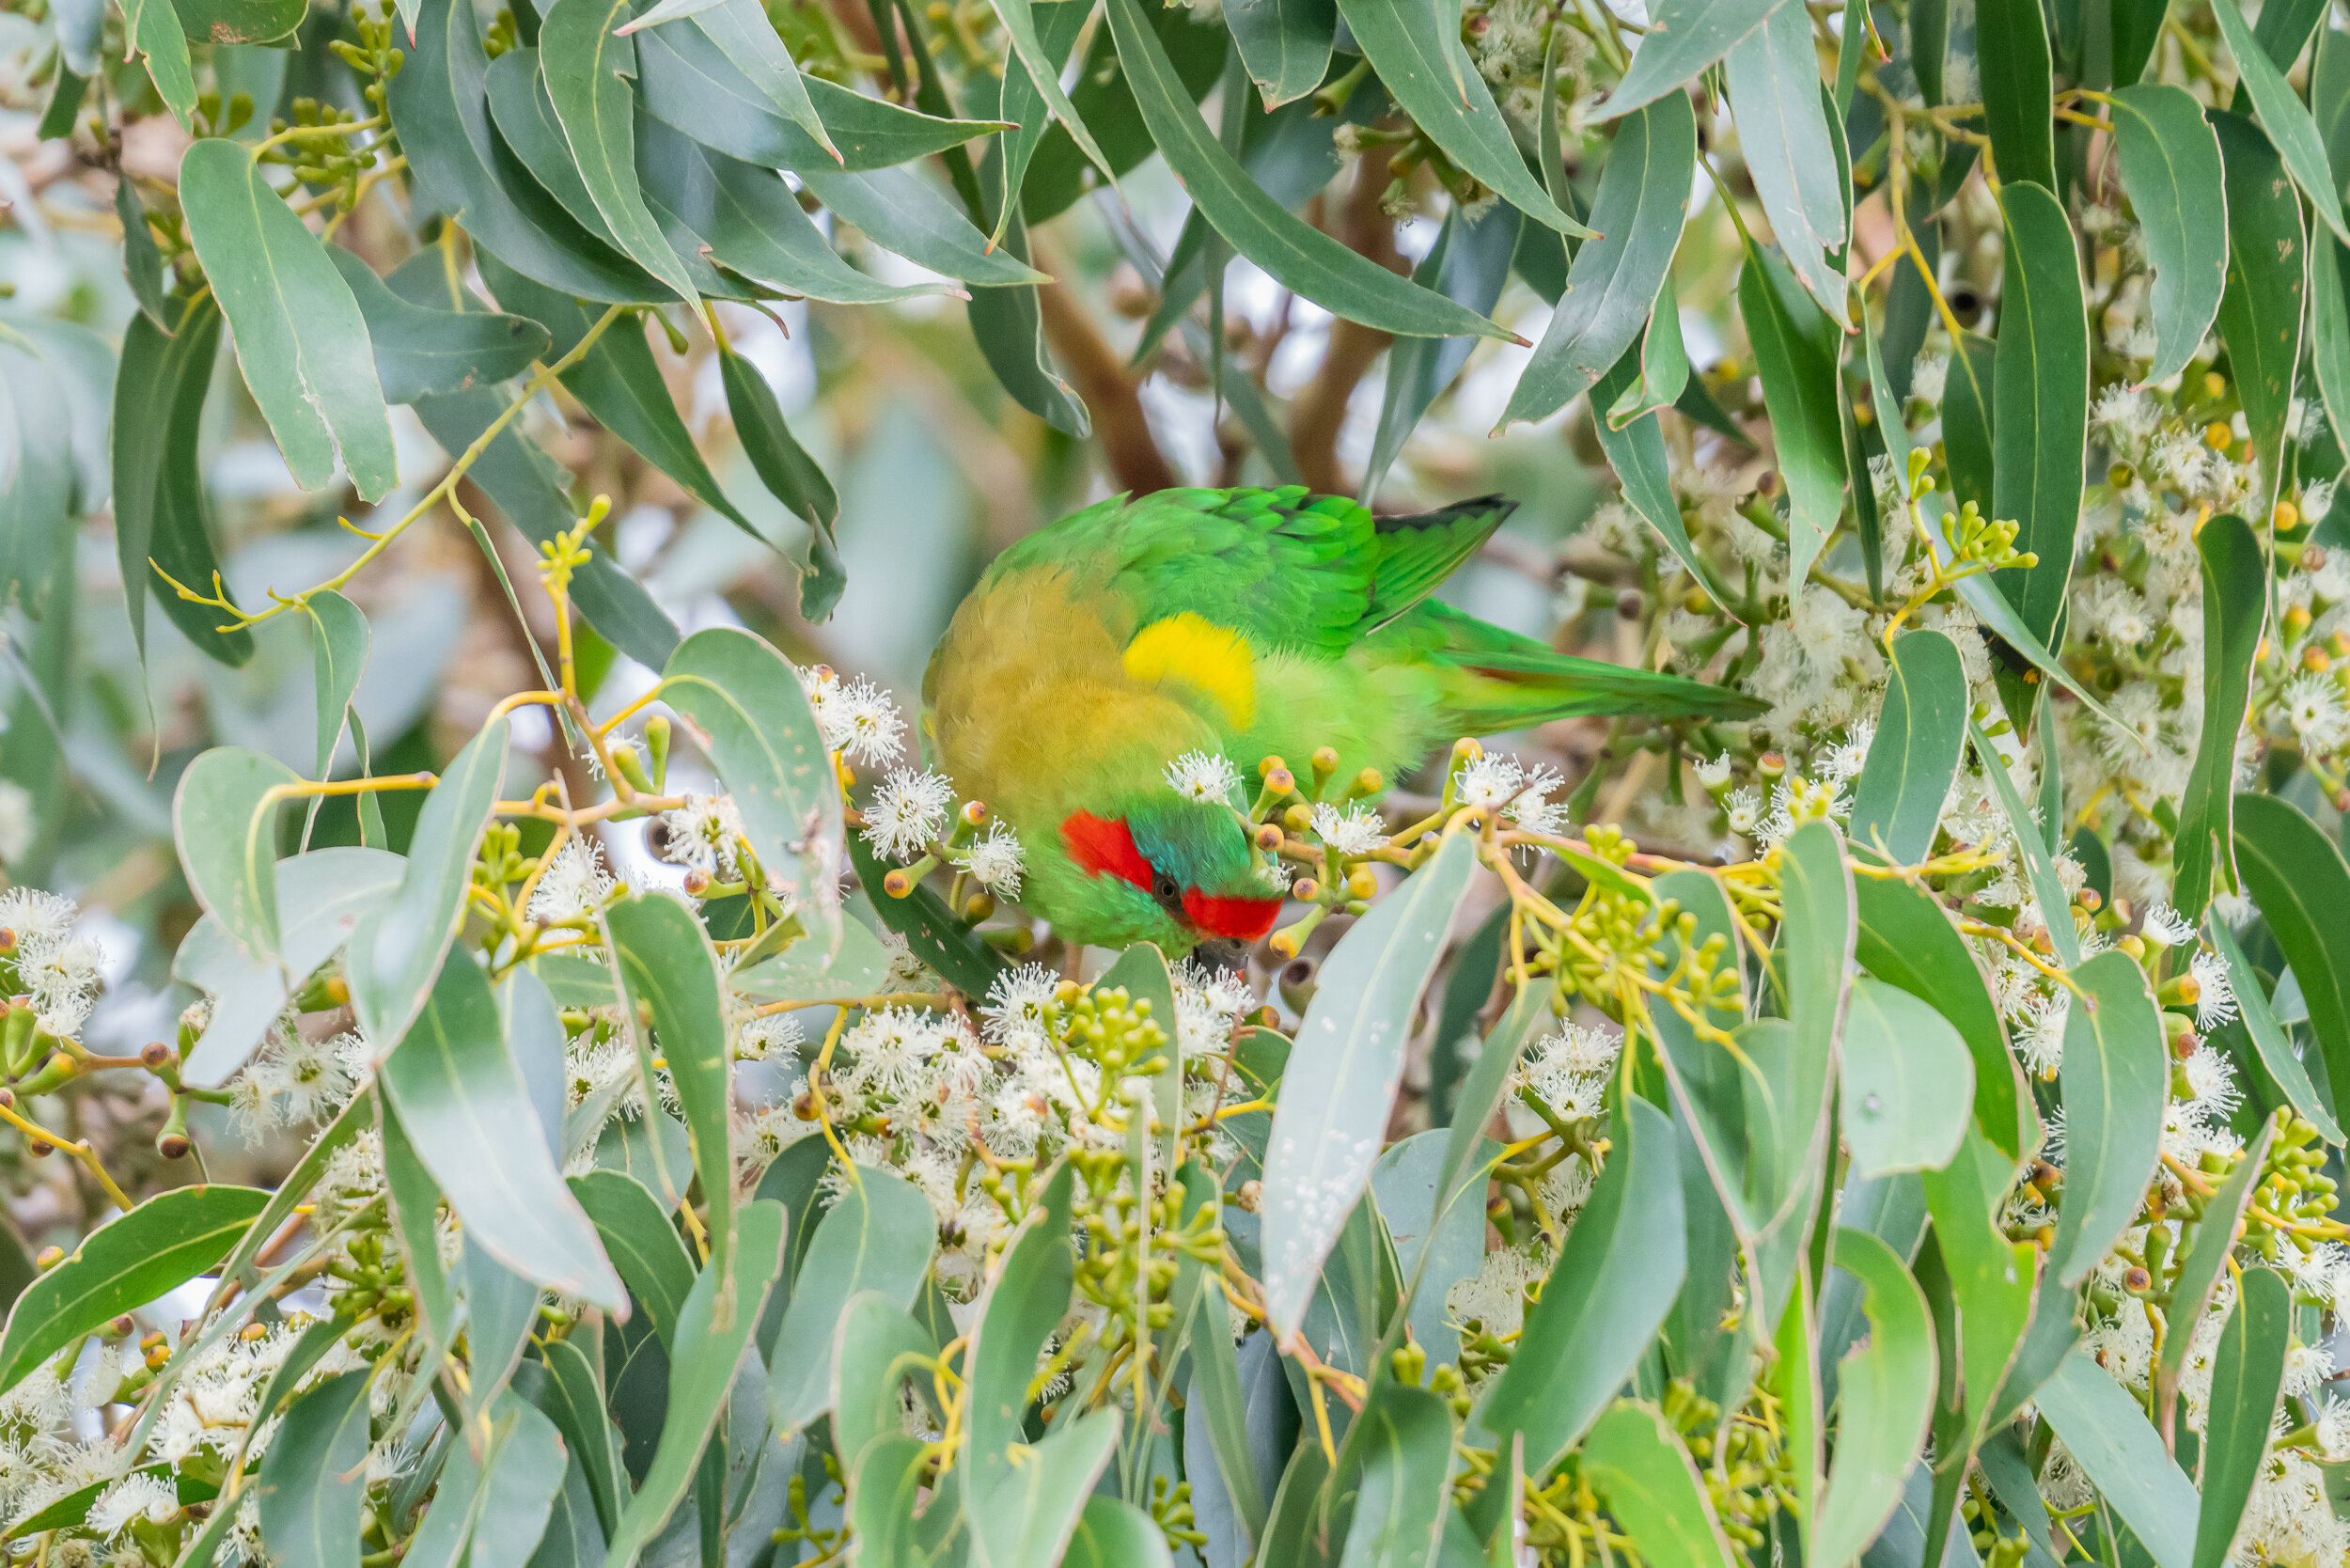 Musk Lorikeet,  Glossopsitta concinna . Only found in South Eastern Australia. They eat mainly pollen and nectar from eucalypts using their specialised brush-tipped tongues. Declines in populations have occurred due to the clearance of eucalypts for agriculture, but they benefit from plantings in towns.